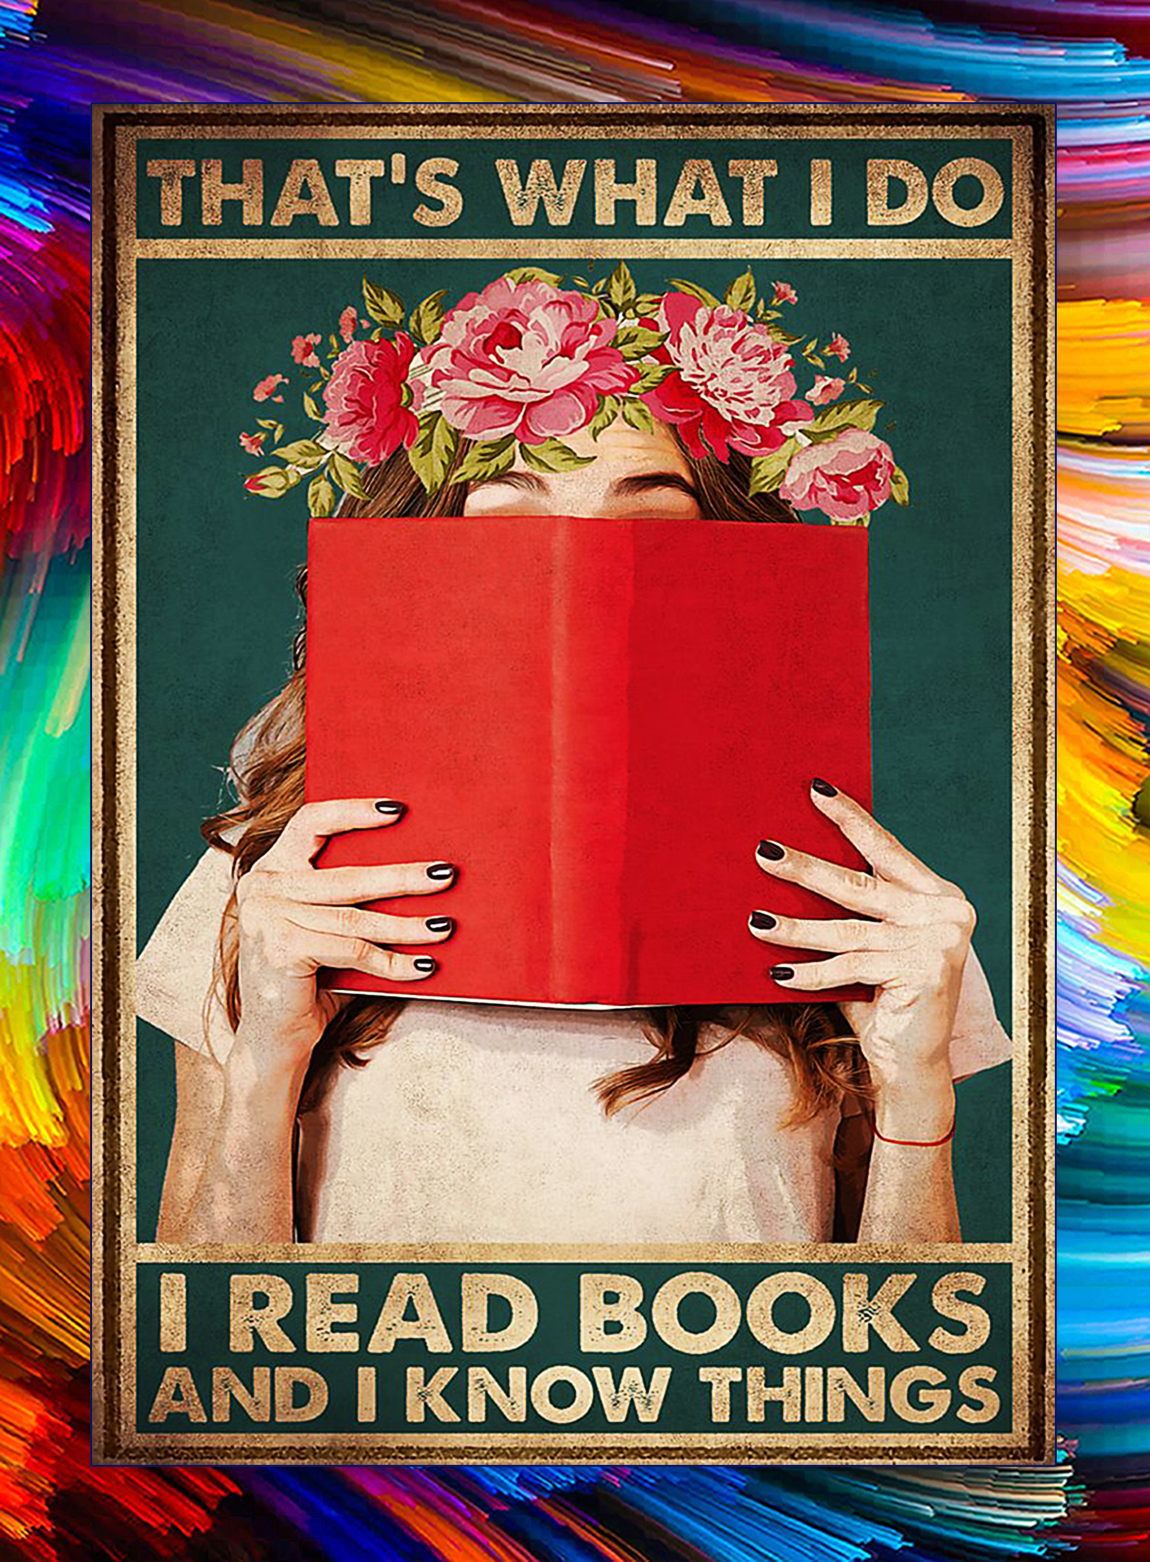 That's what i do i read book and i know things poster - A2